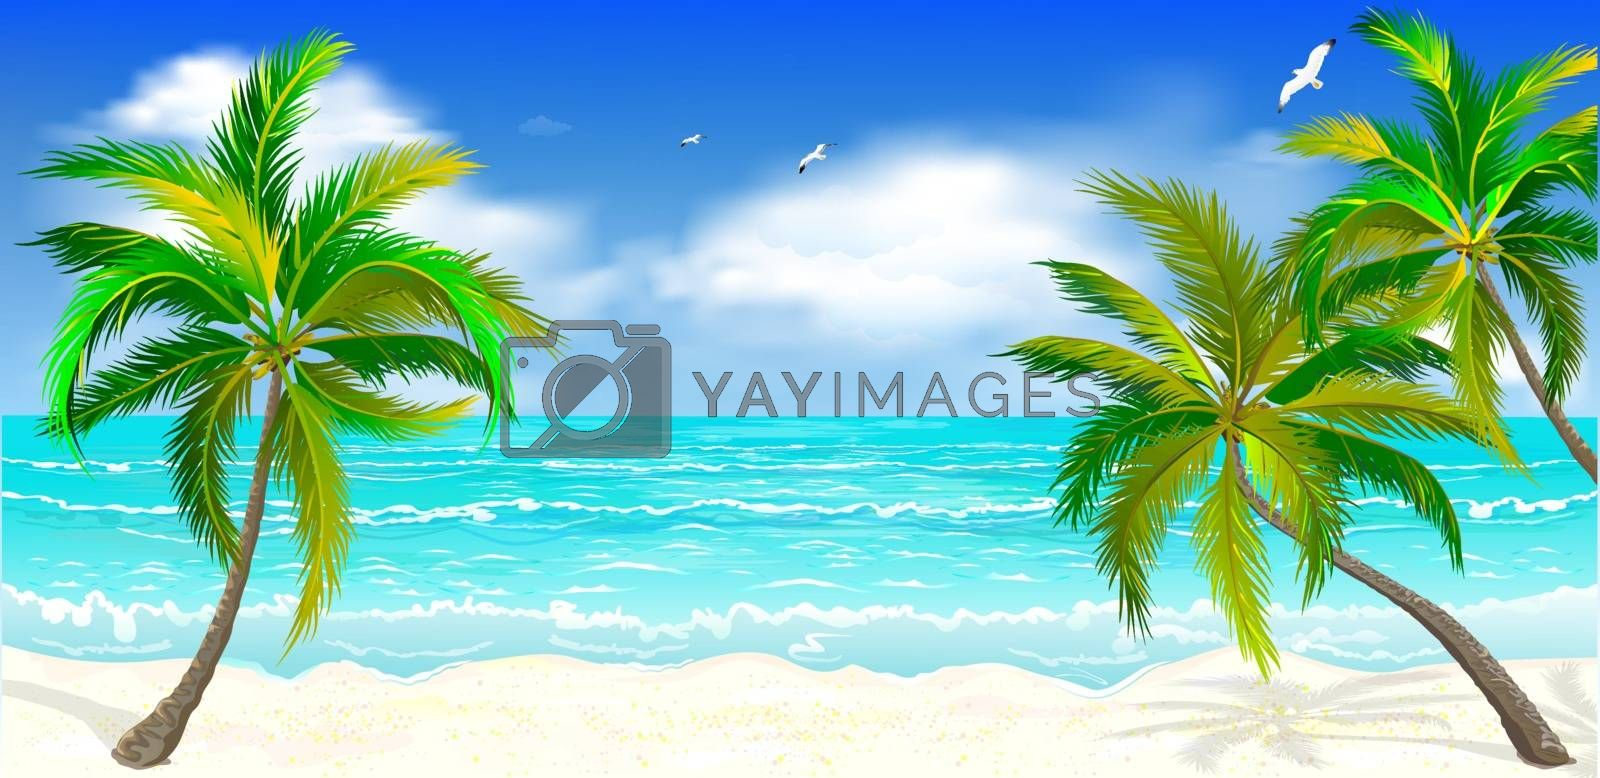 Landscape of the tropical shore. Landscape of the sea shore with palm trees. Sea shore with palm trees, blue sky and white clouds. Palm trees against the background of the sea, sky and clouds.